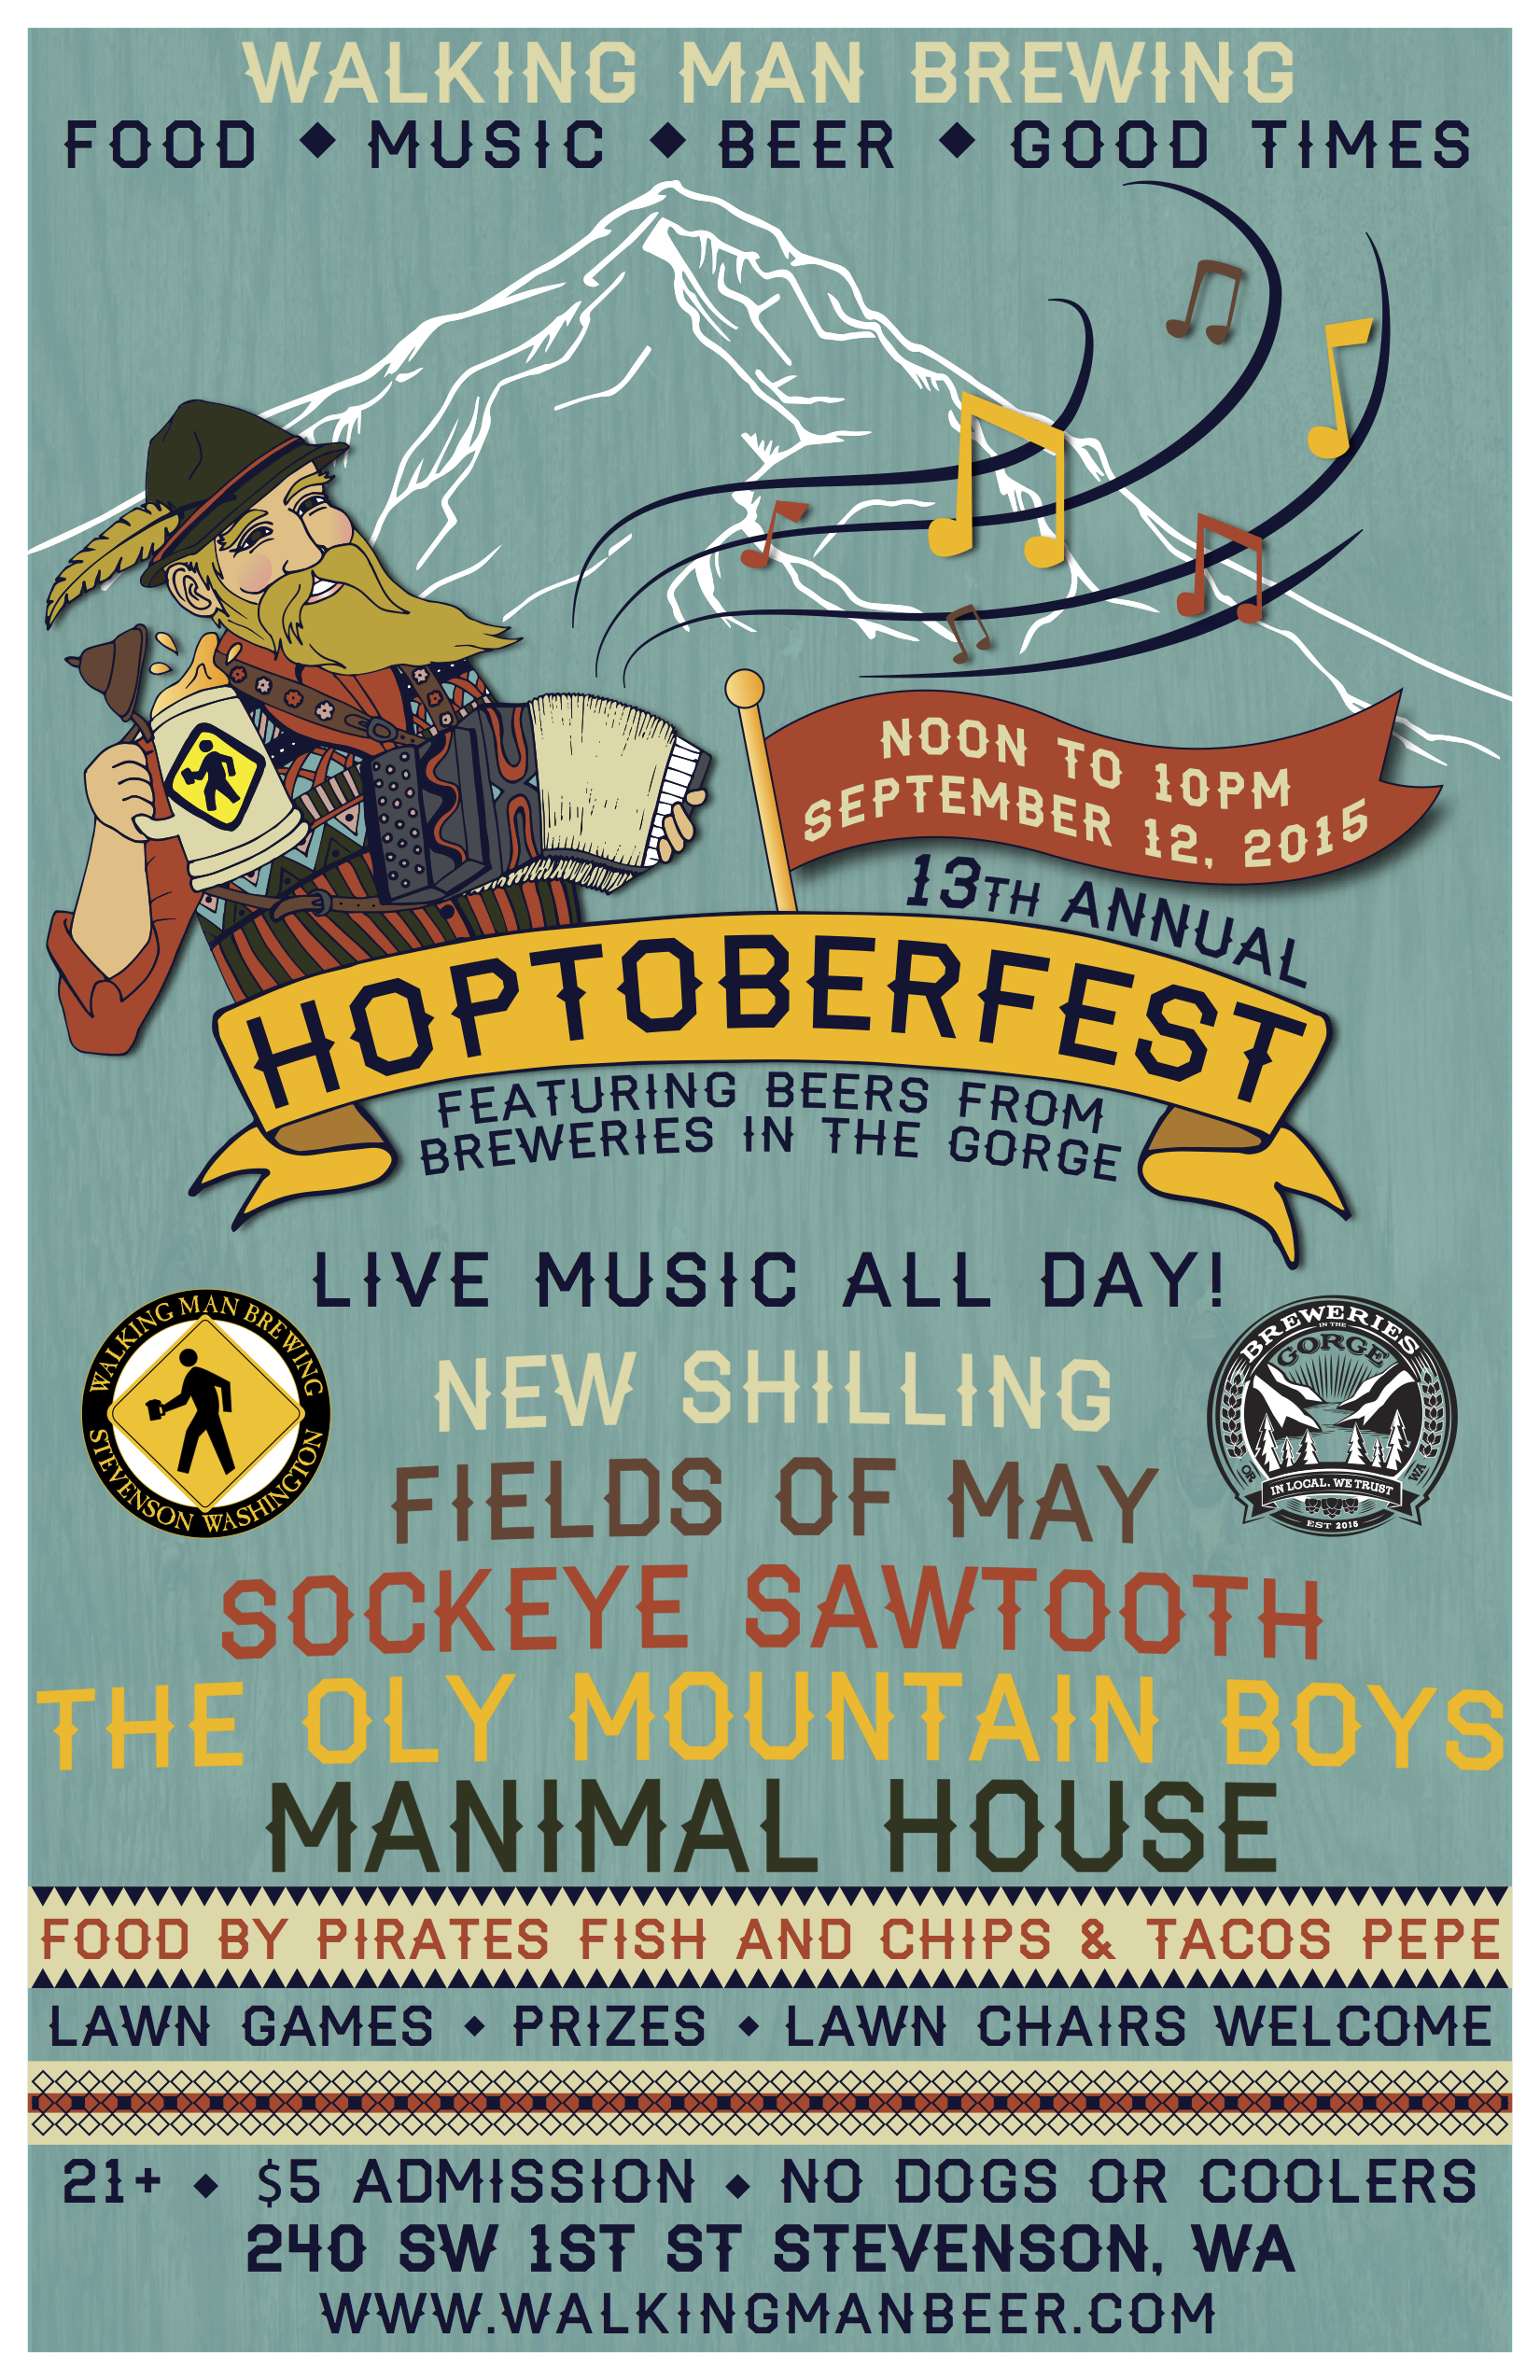 Walking Man Brewing's 13th Annual Hoptoberfest 2015